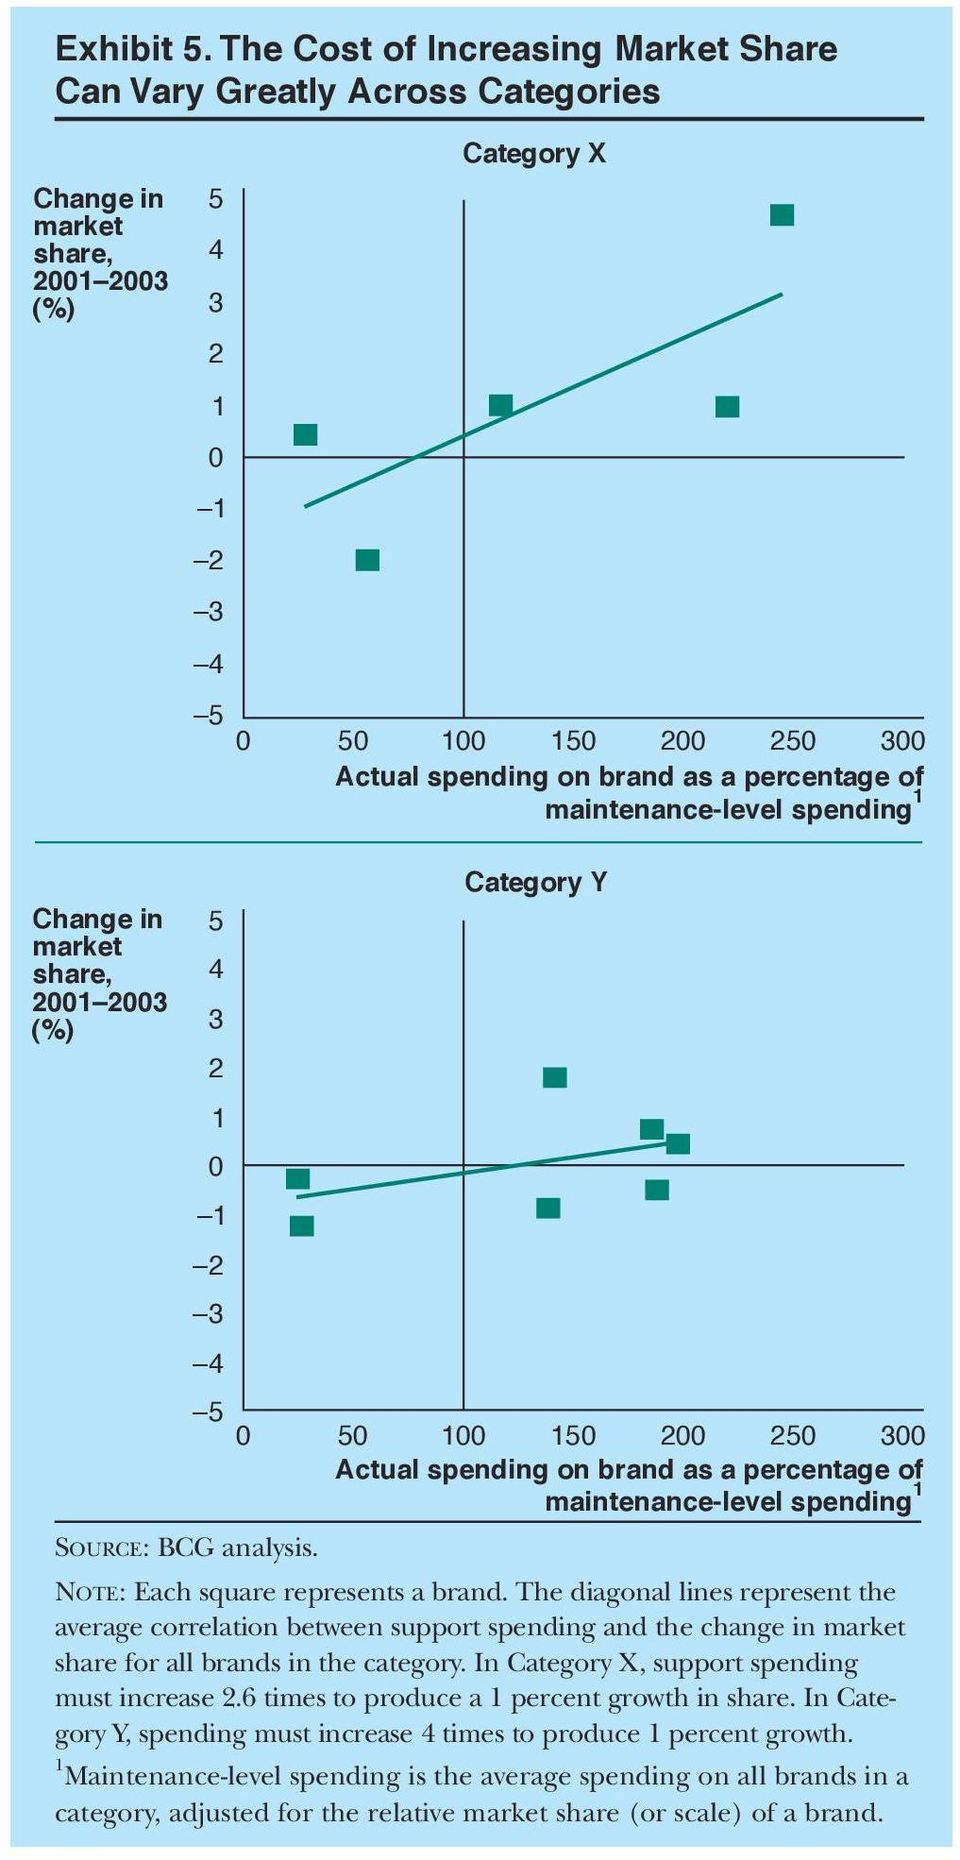 percentage of maintenance-level spending 1 Change in market share, 2001 2003 (%) 5 4 3 2 1 0 1 2 3 4 Category Y 5 0 50 100 150 200 250 300 Actual spending on brand as a percentage of